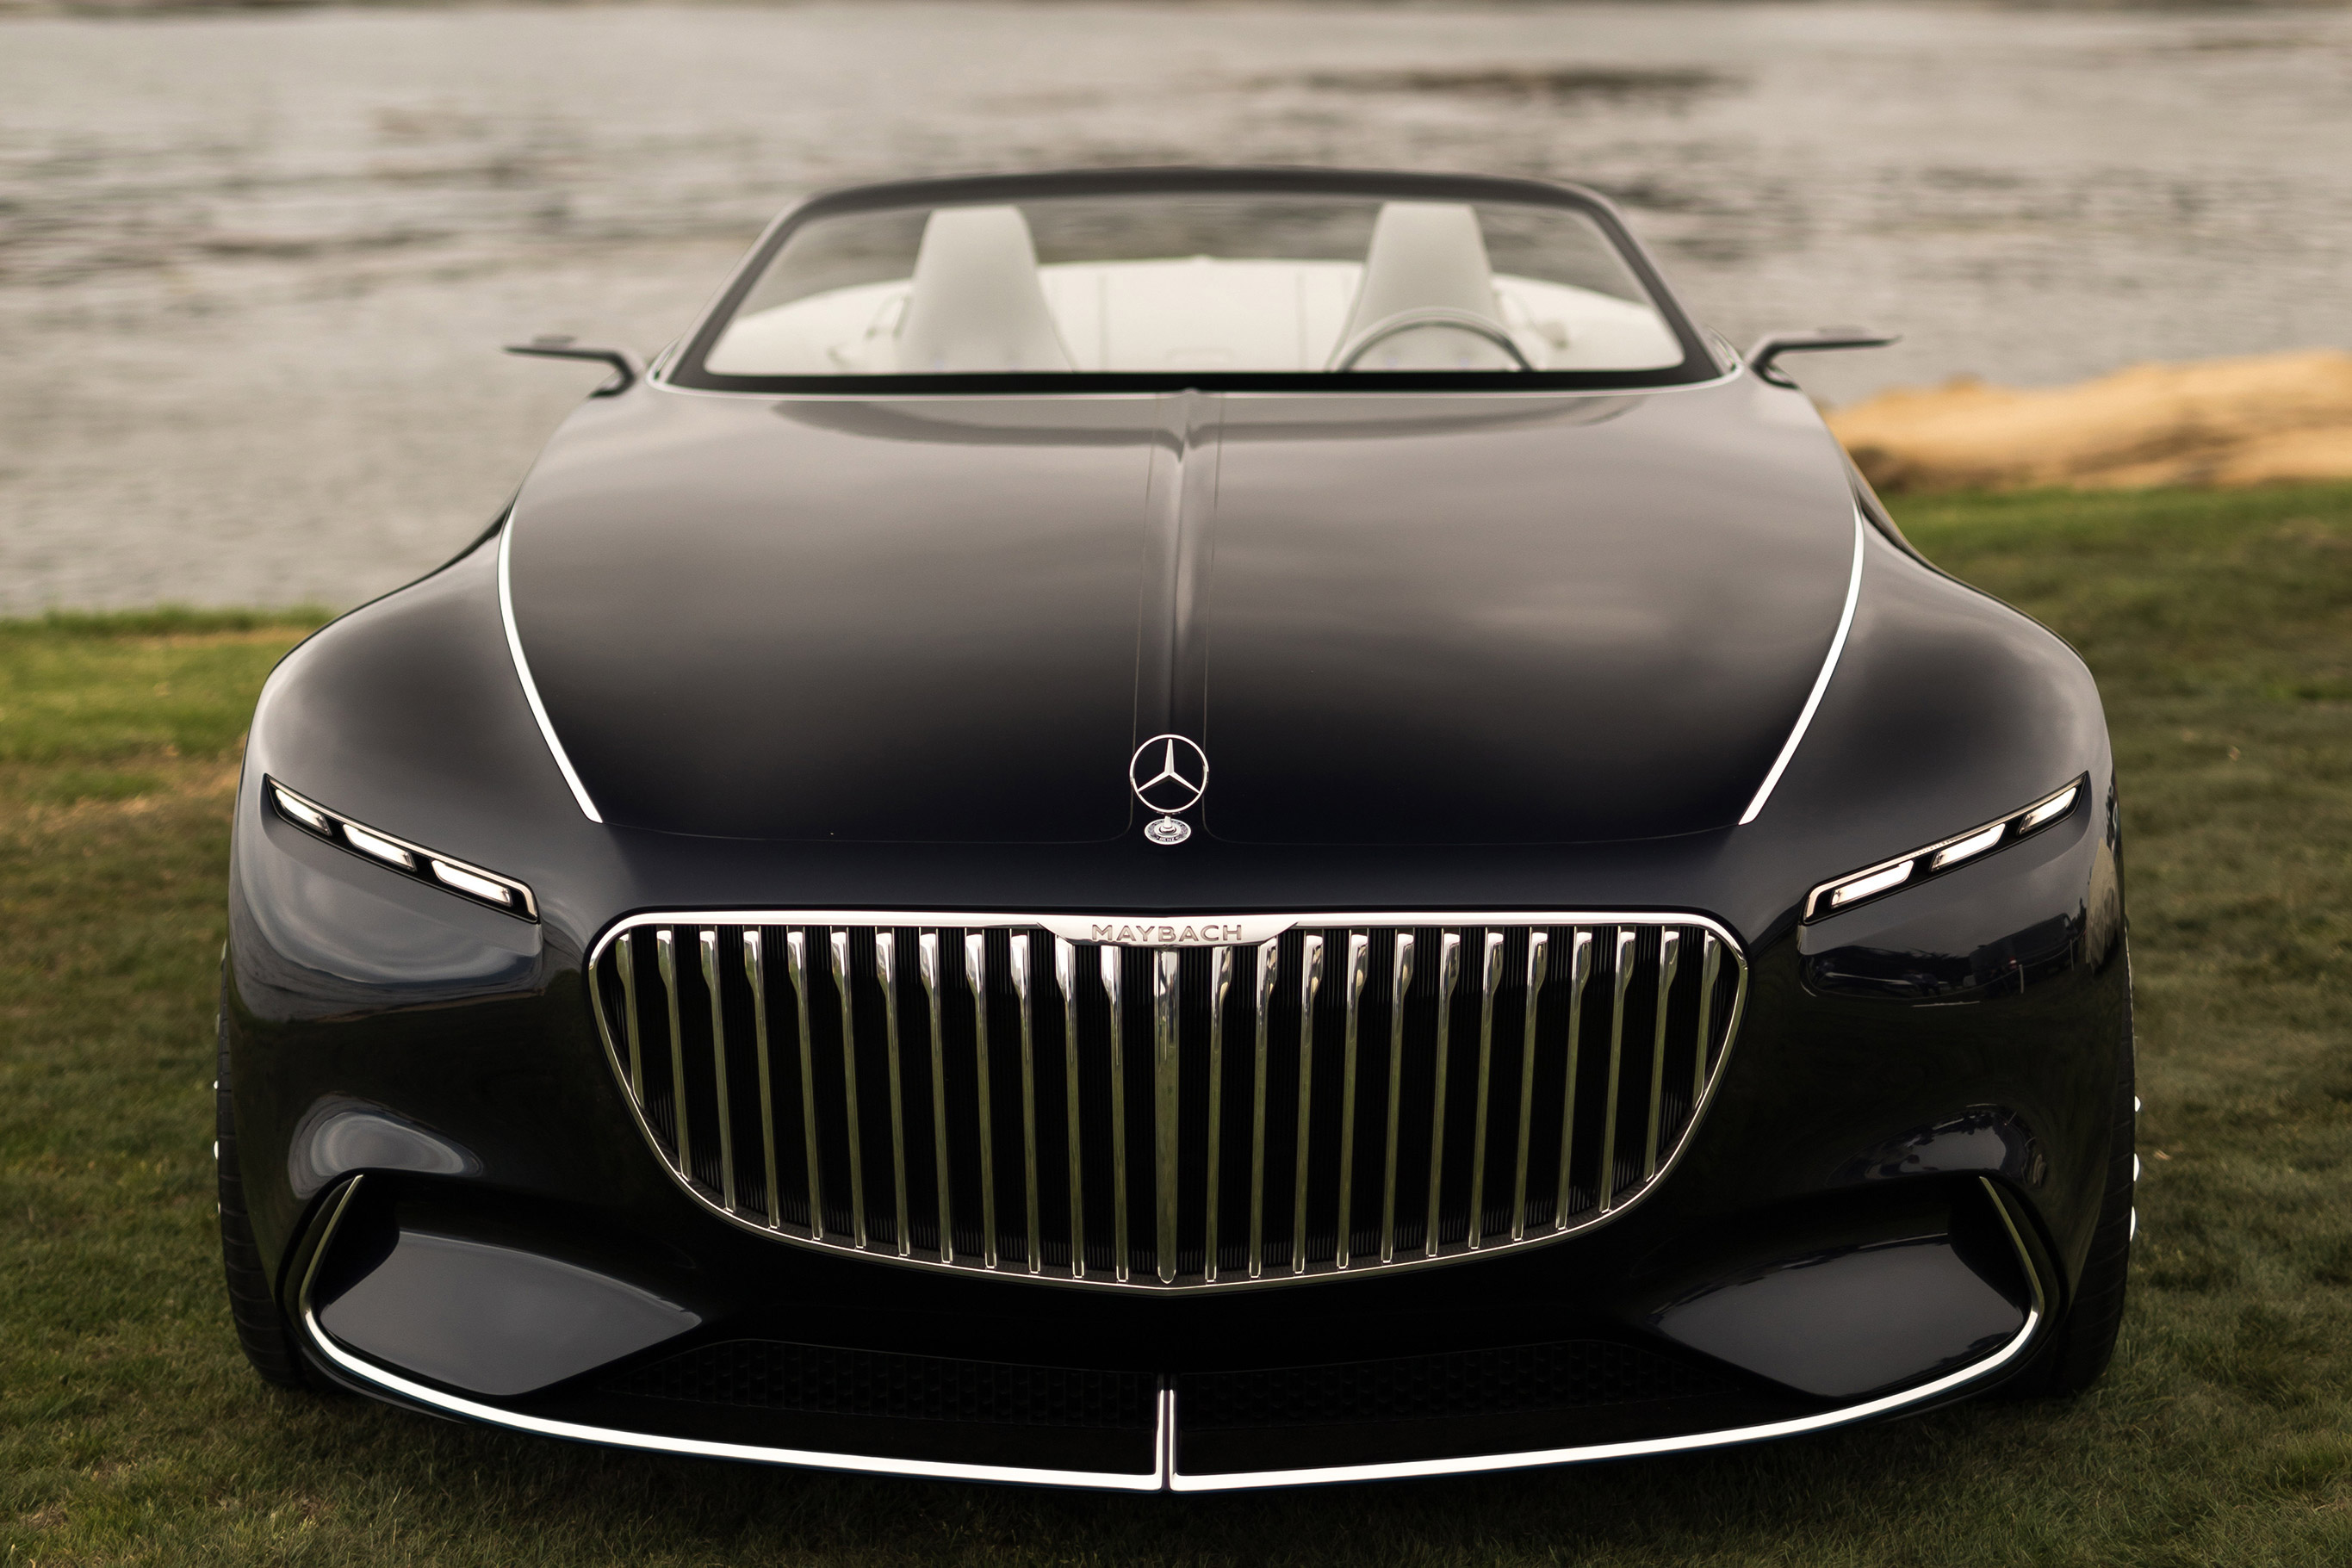 Vision Mercedes Maybach 6 Cabriolet 2017, HD Cars, 4k Wallpapers ...